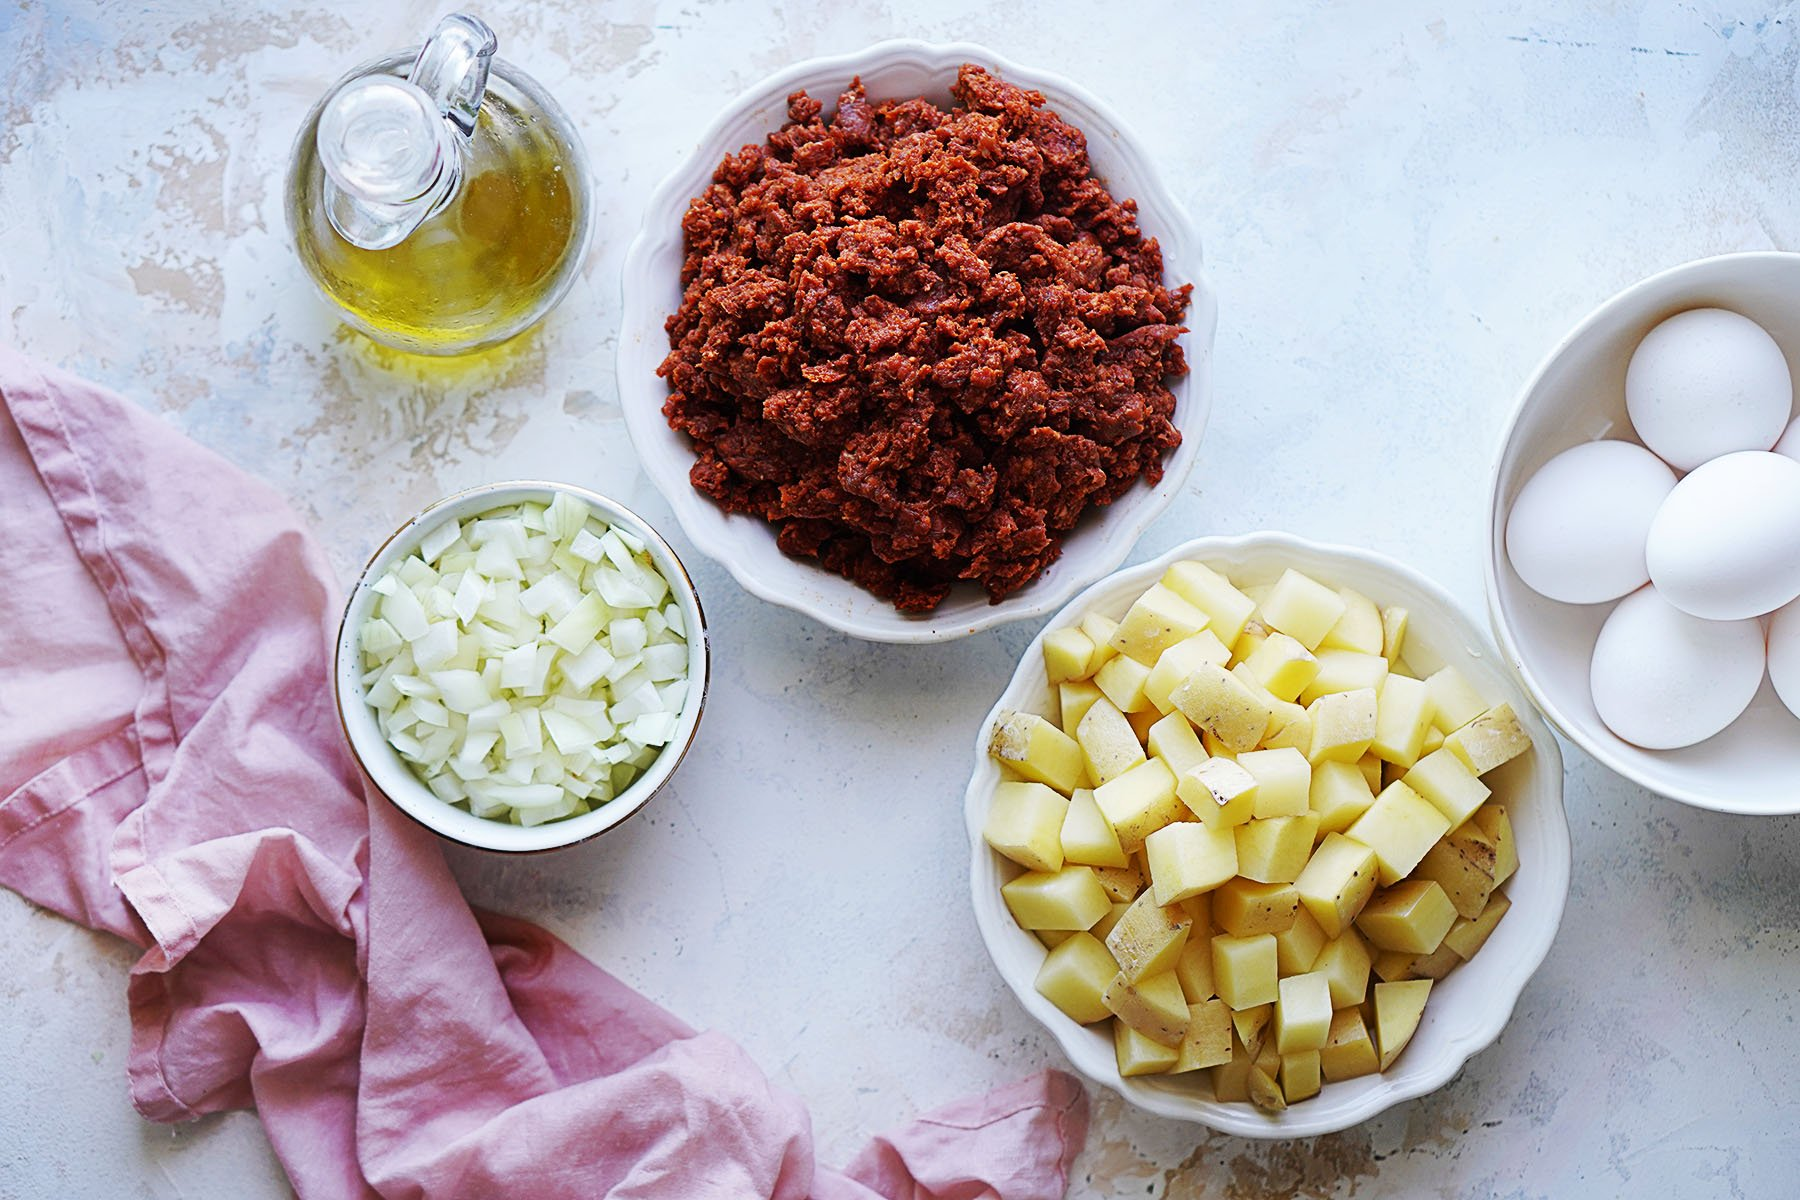 Ingredients placed in small bowls: cube potatoes, onions, ground beef chorizo, whole eggs and oil in a bottle